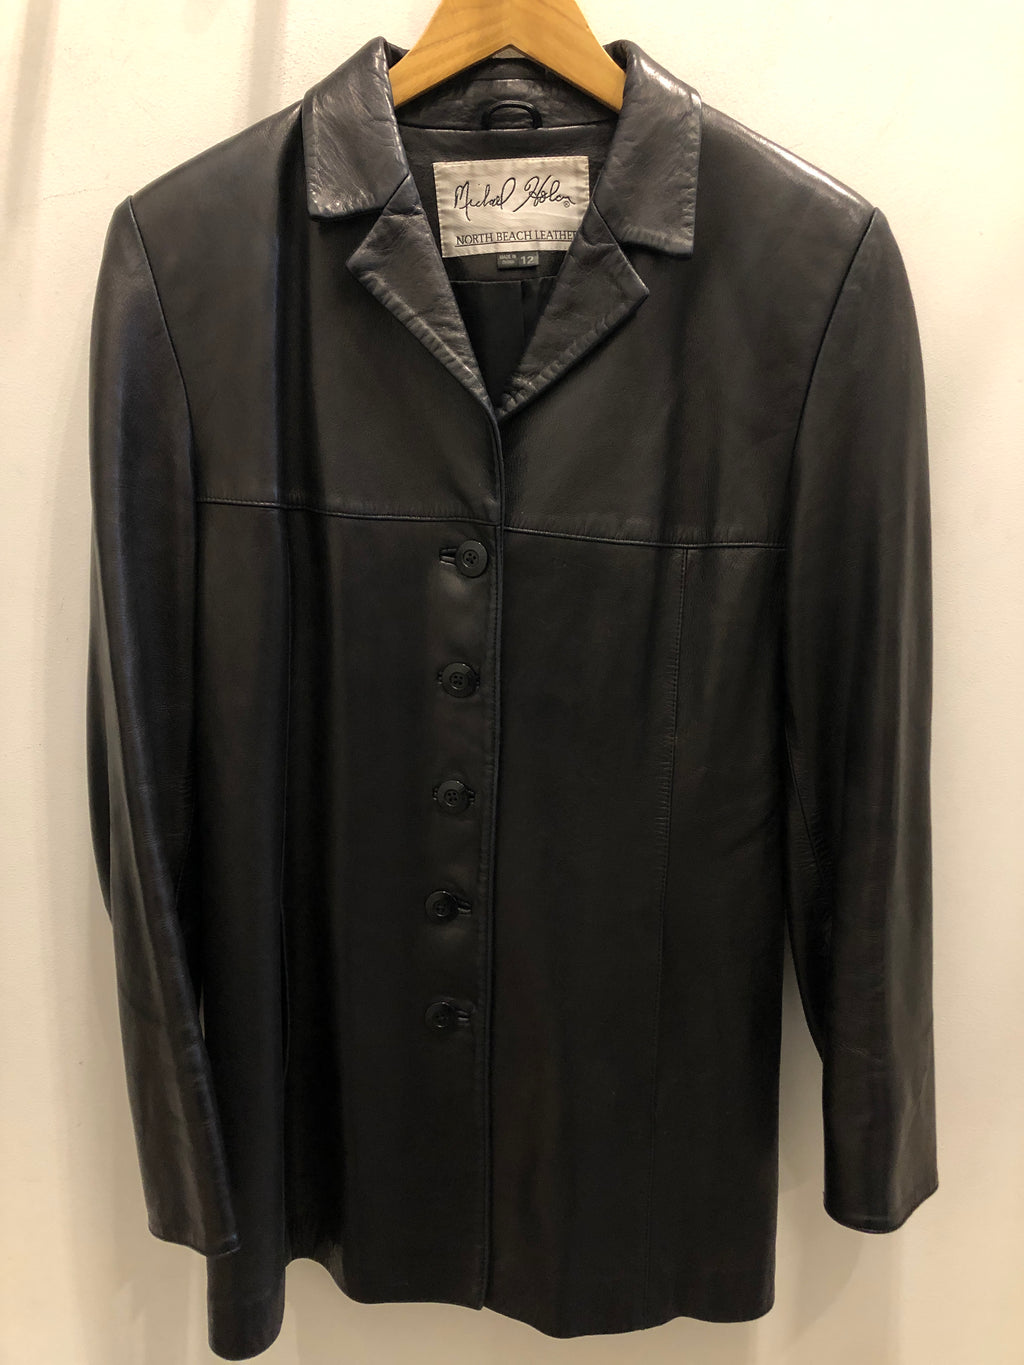 Michael Holem North Beach Black Soft Leather Long Button Up Collar Suit Trendy Unisex Jacket 12 M L